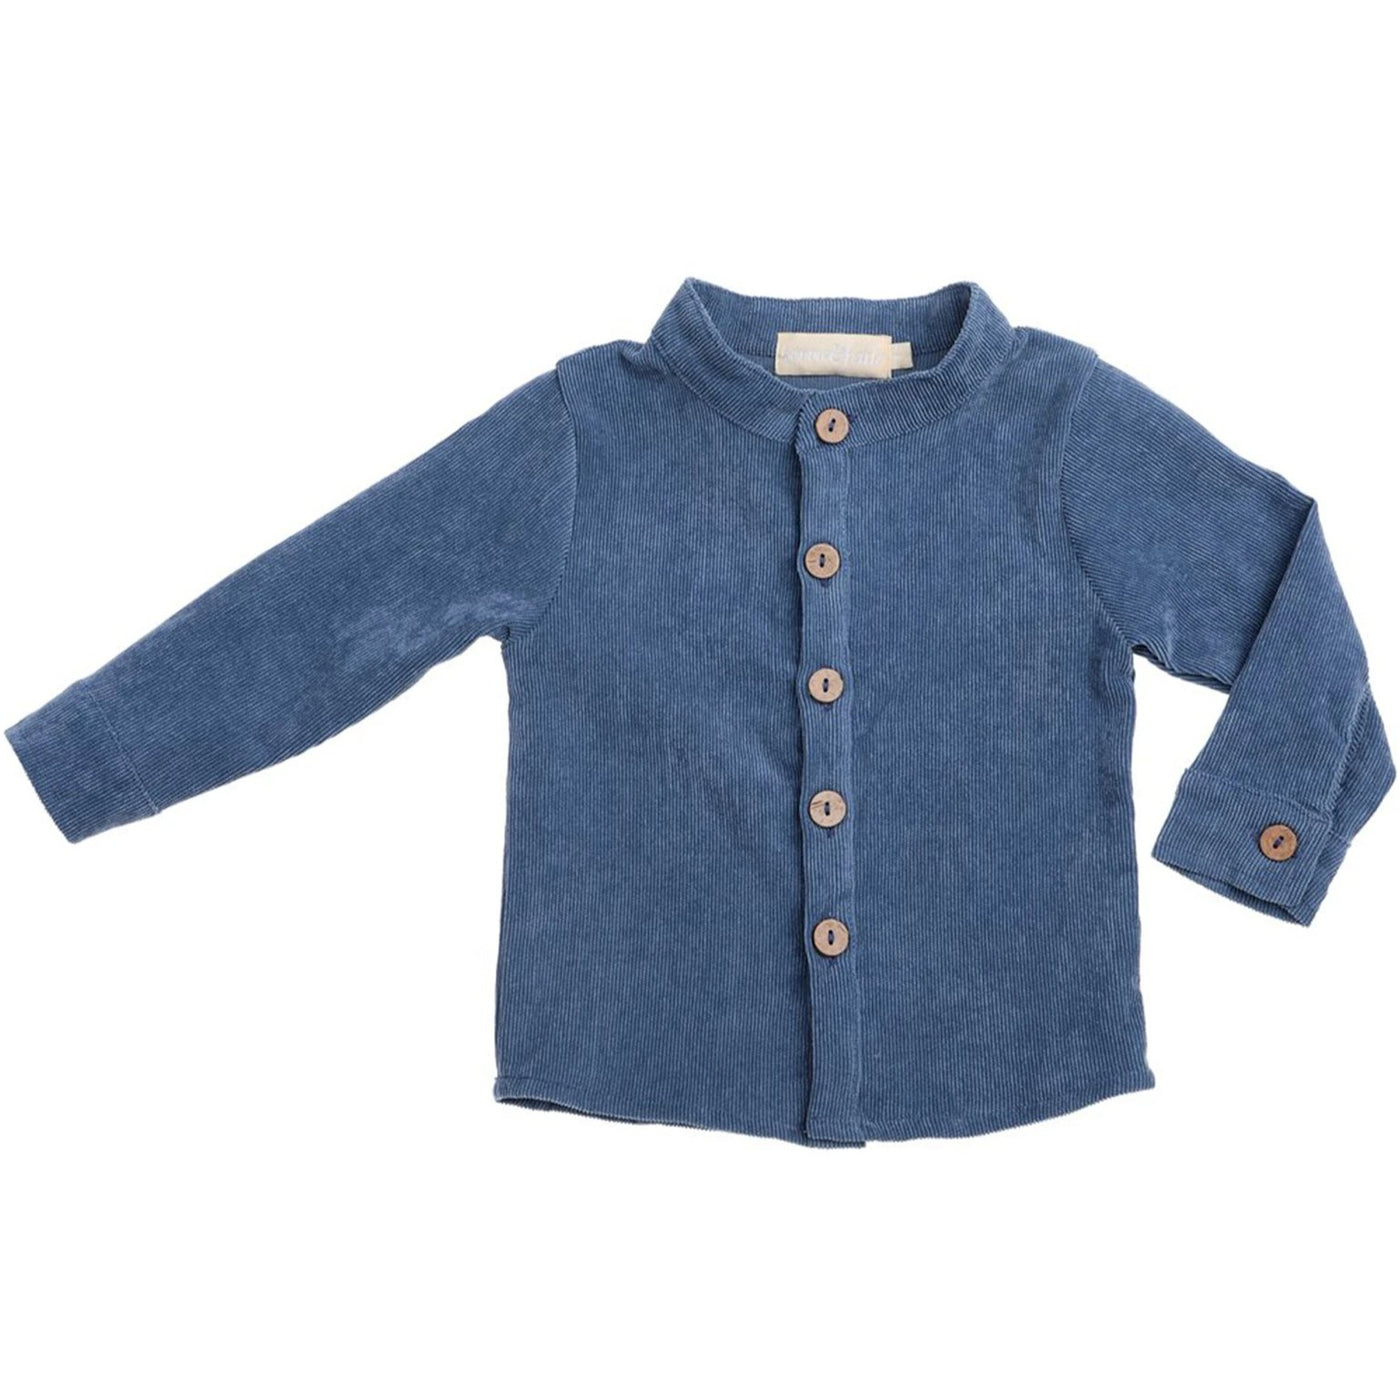 US stockist of Bonnie & Harlo blue corduroy long sleeve shirt